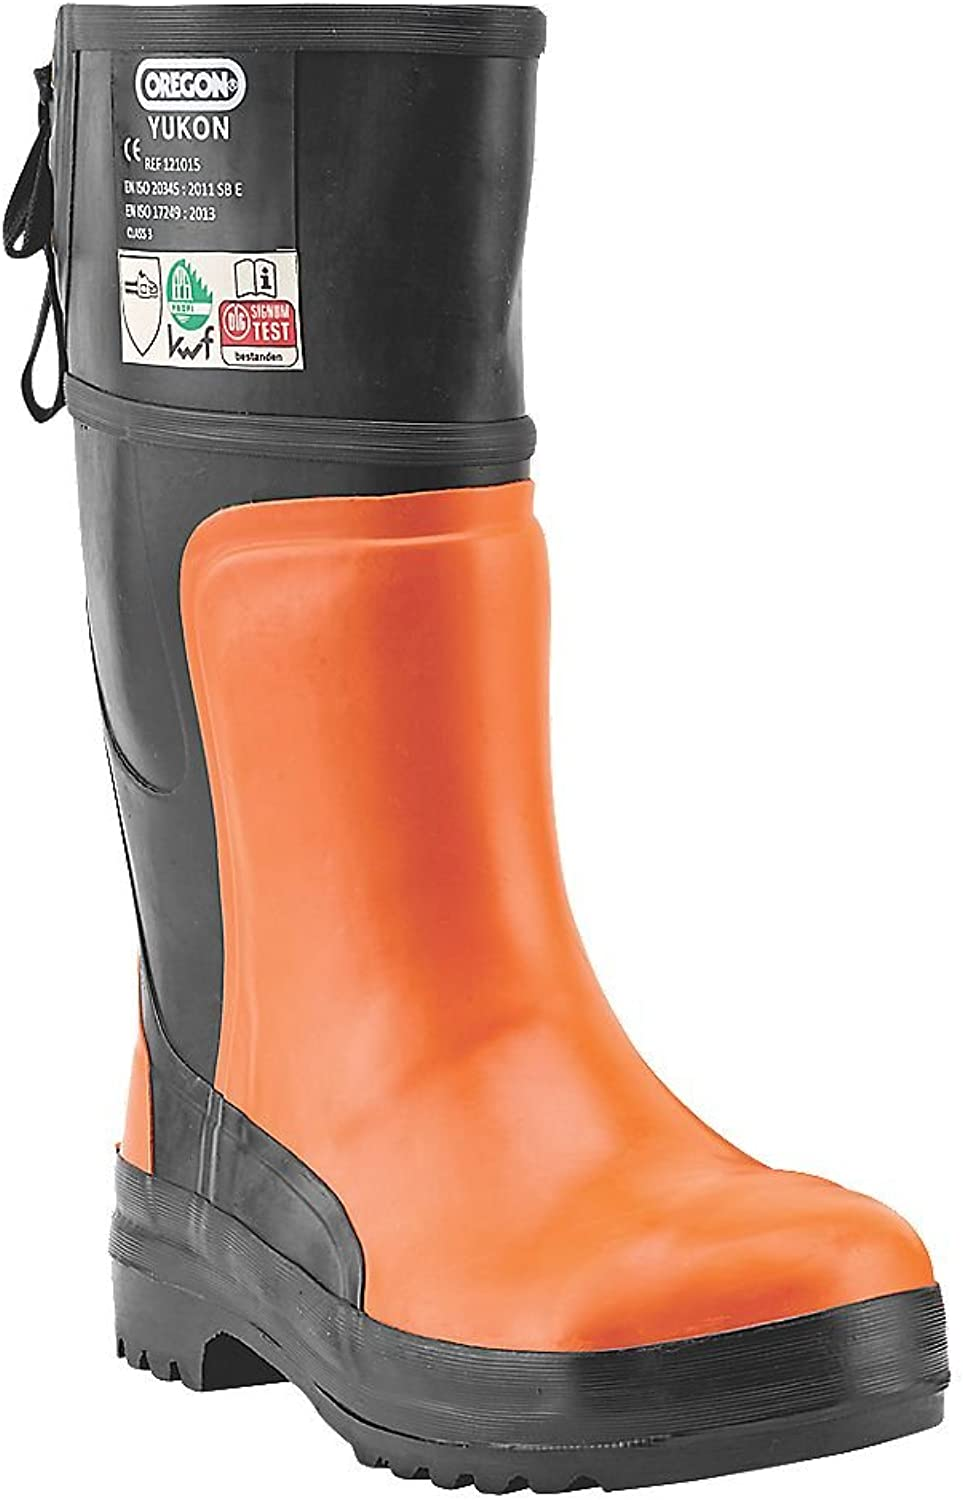 Oregon Yukon Rubber Chainsaw Safety Boots orange   Black Size 7.5